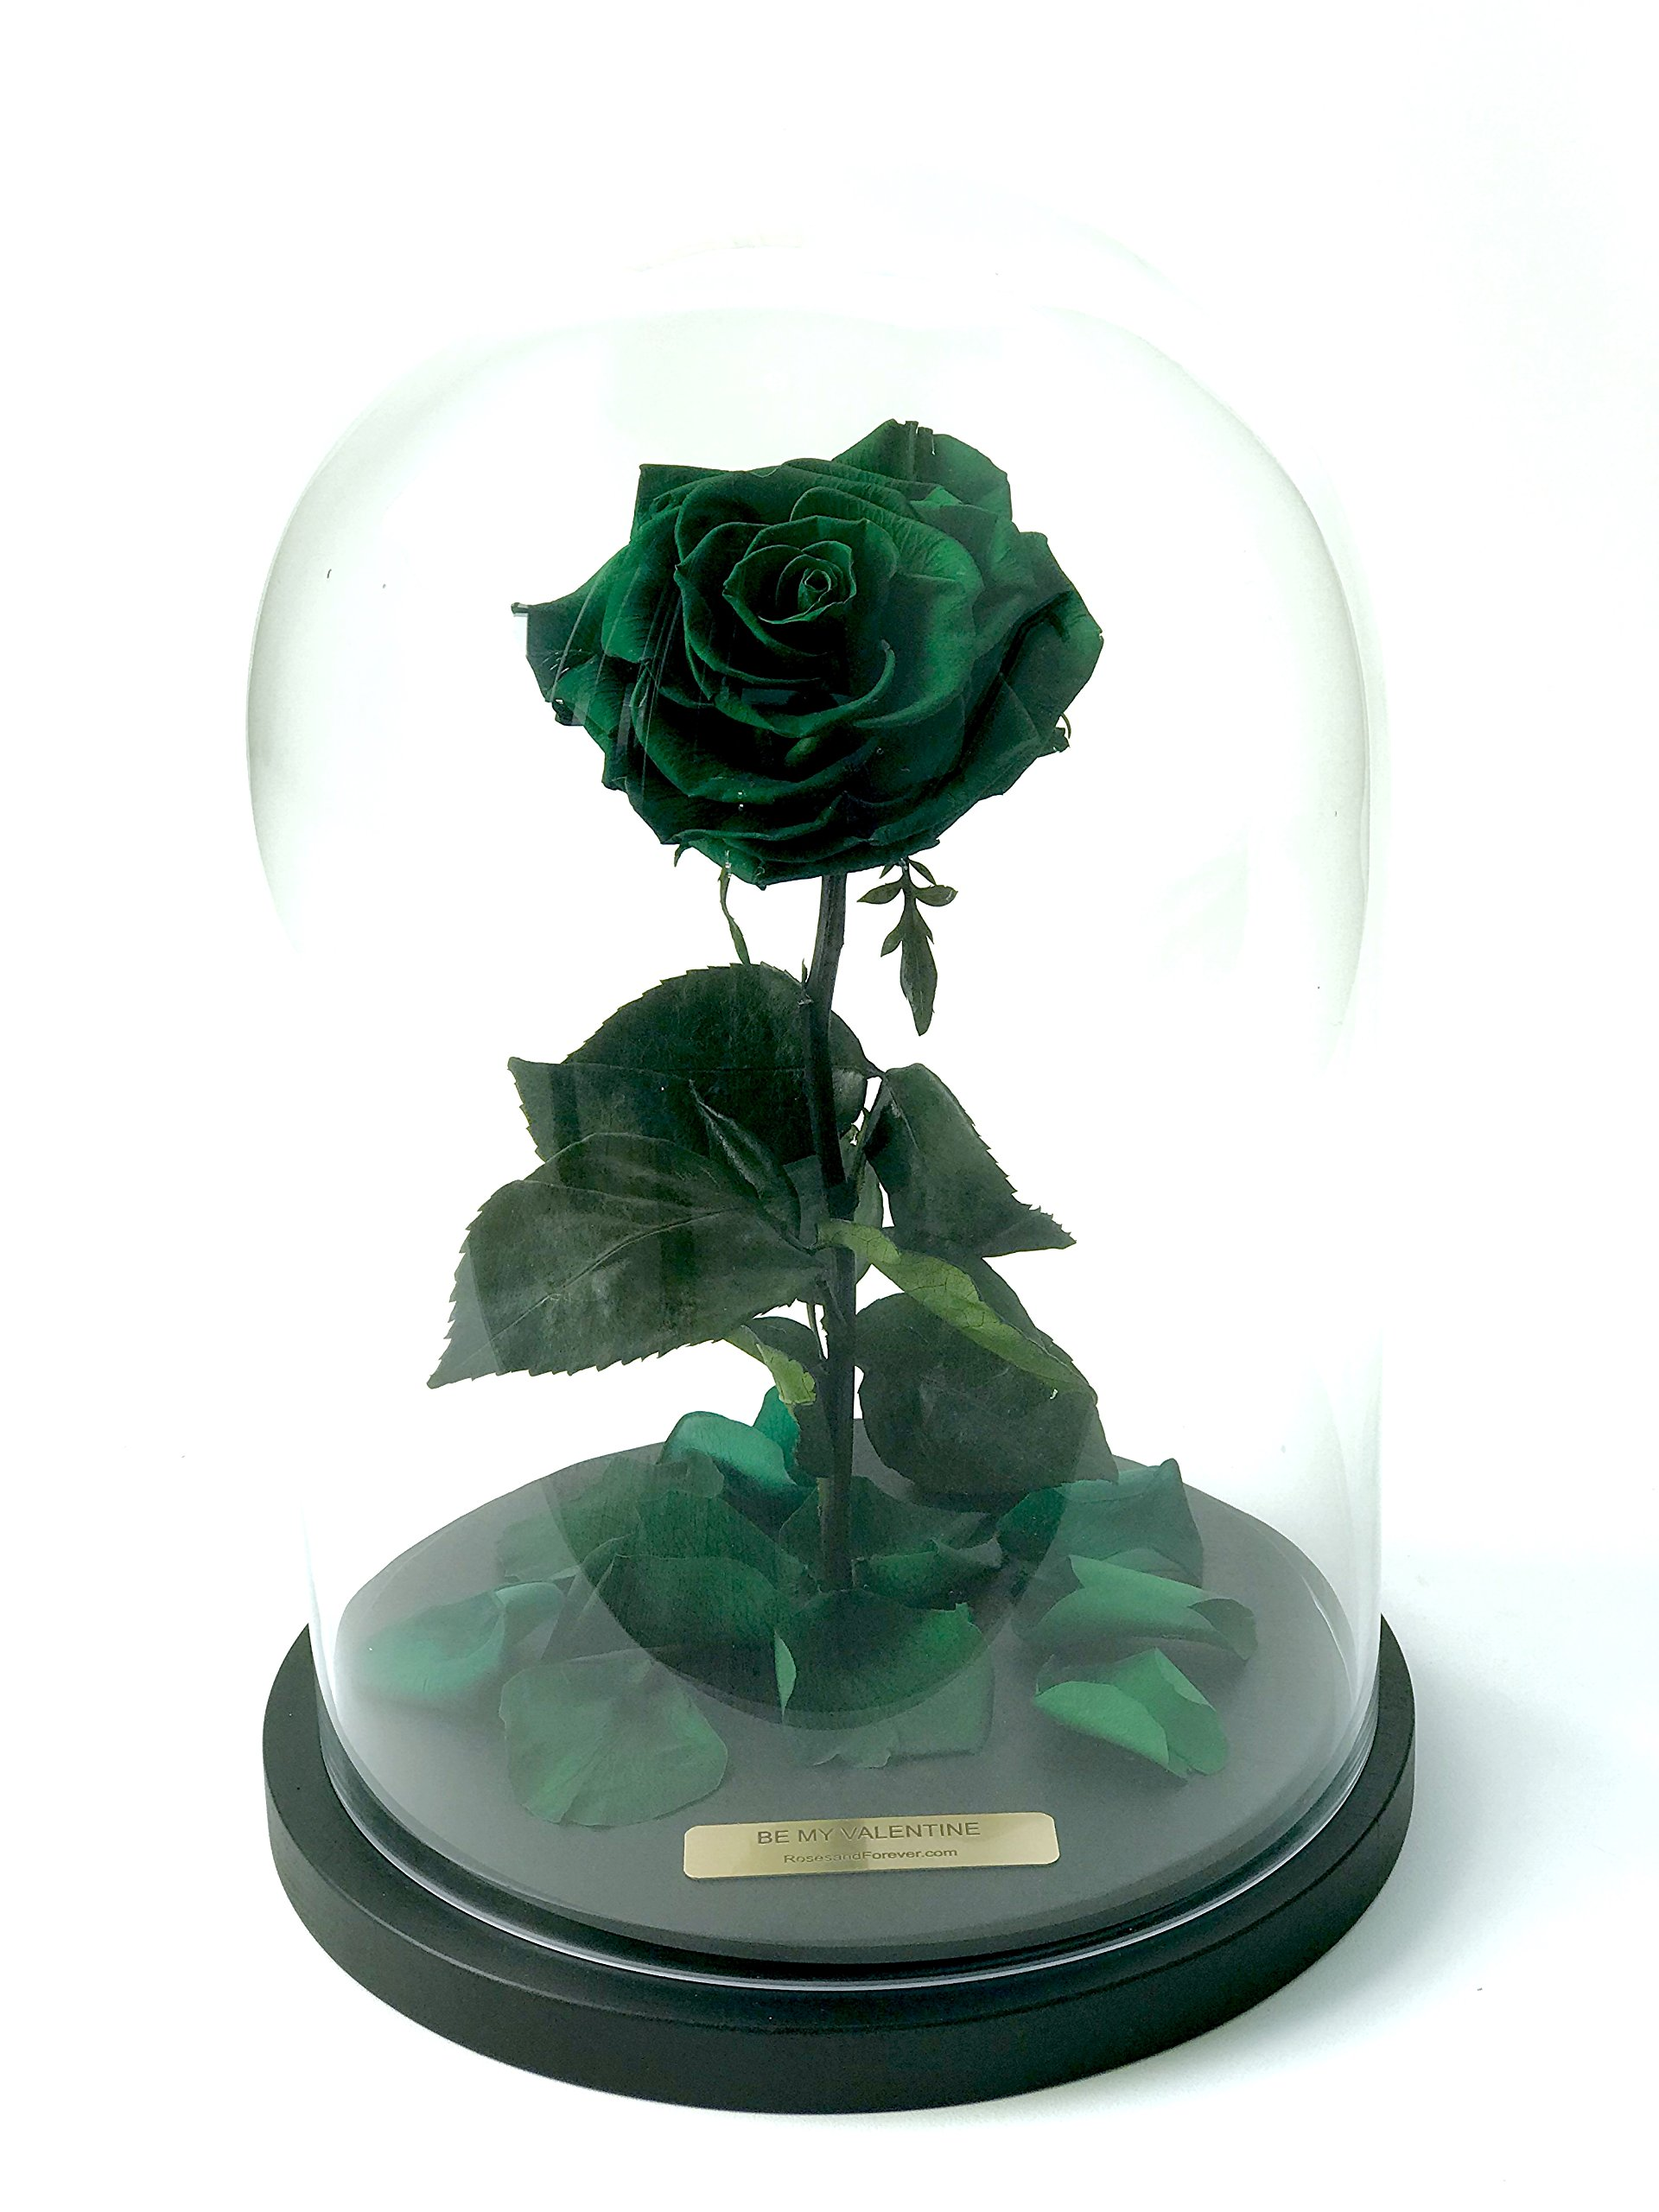 Bella Rose (Forest Green) Fresh Cut Preserved Rose in Glass Cloche. SHE WILL LOVE IT - World's Longest Lasting Roses